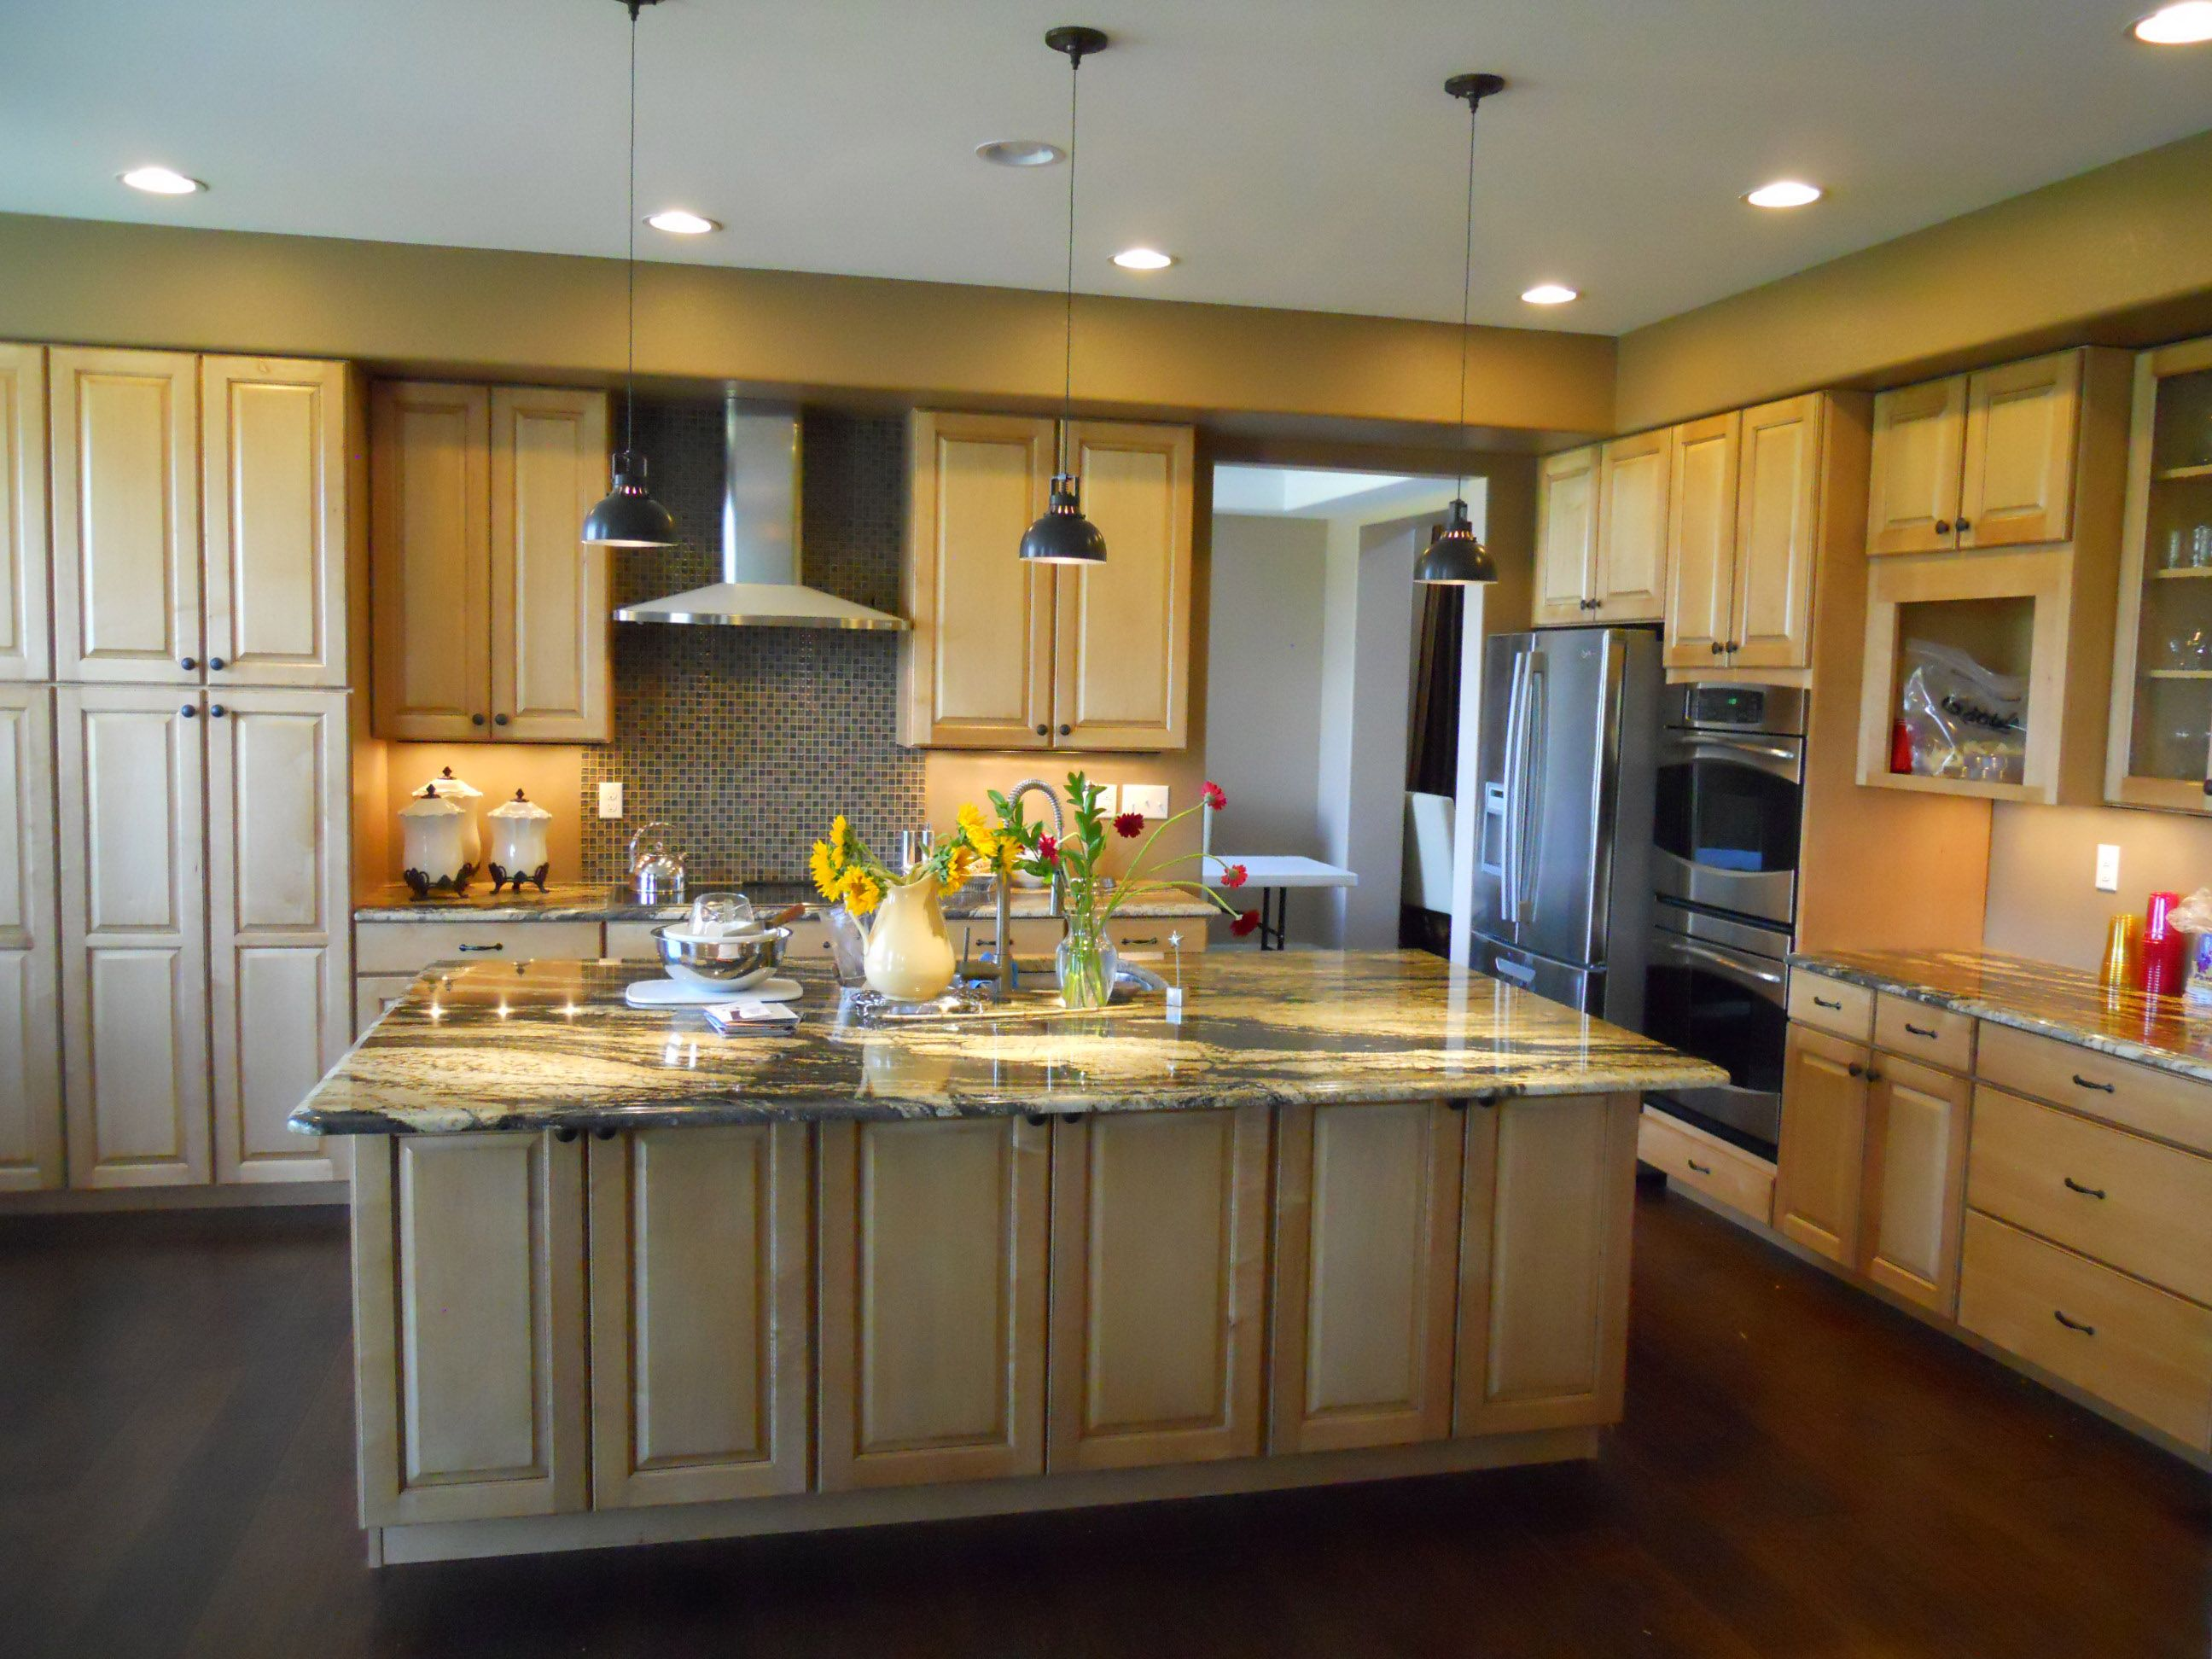 Kitchen Remodeling Companies Kitchen Cabinets For Sale Kitchen Remodel Small Used Kitchen Cabinets